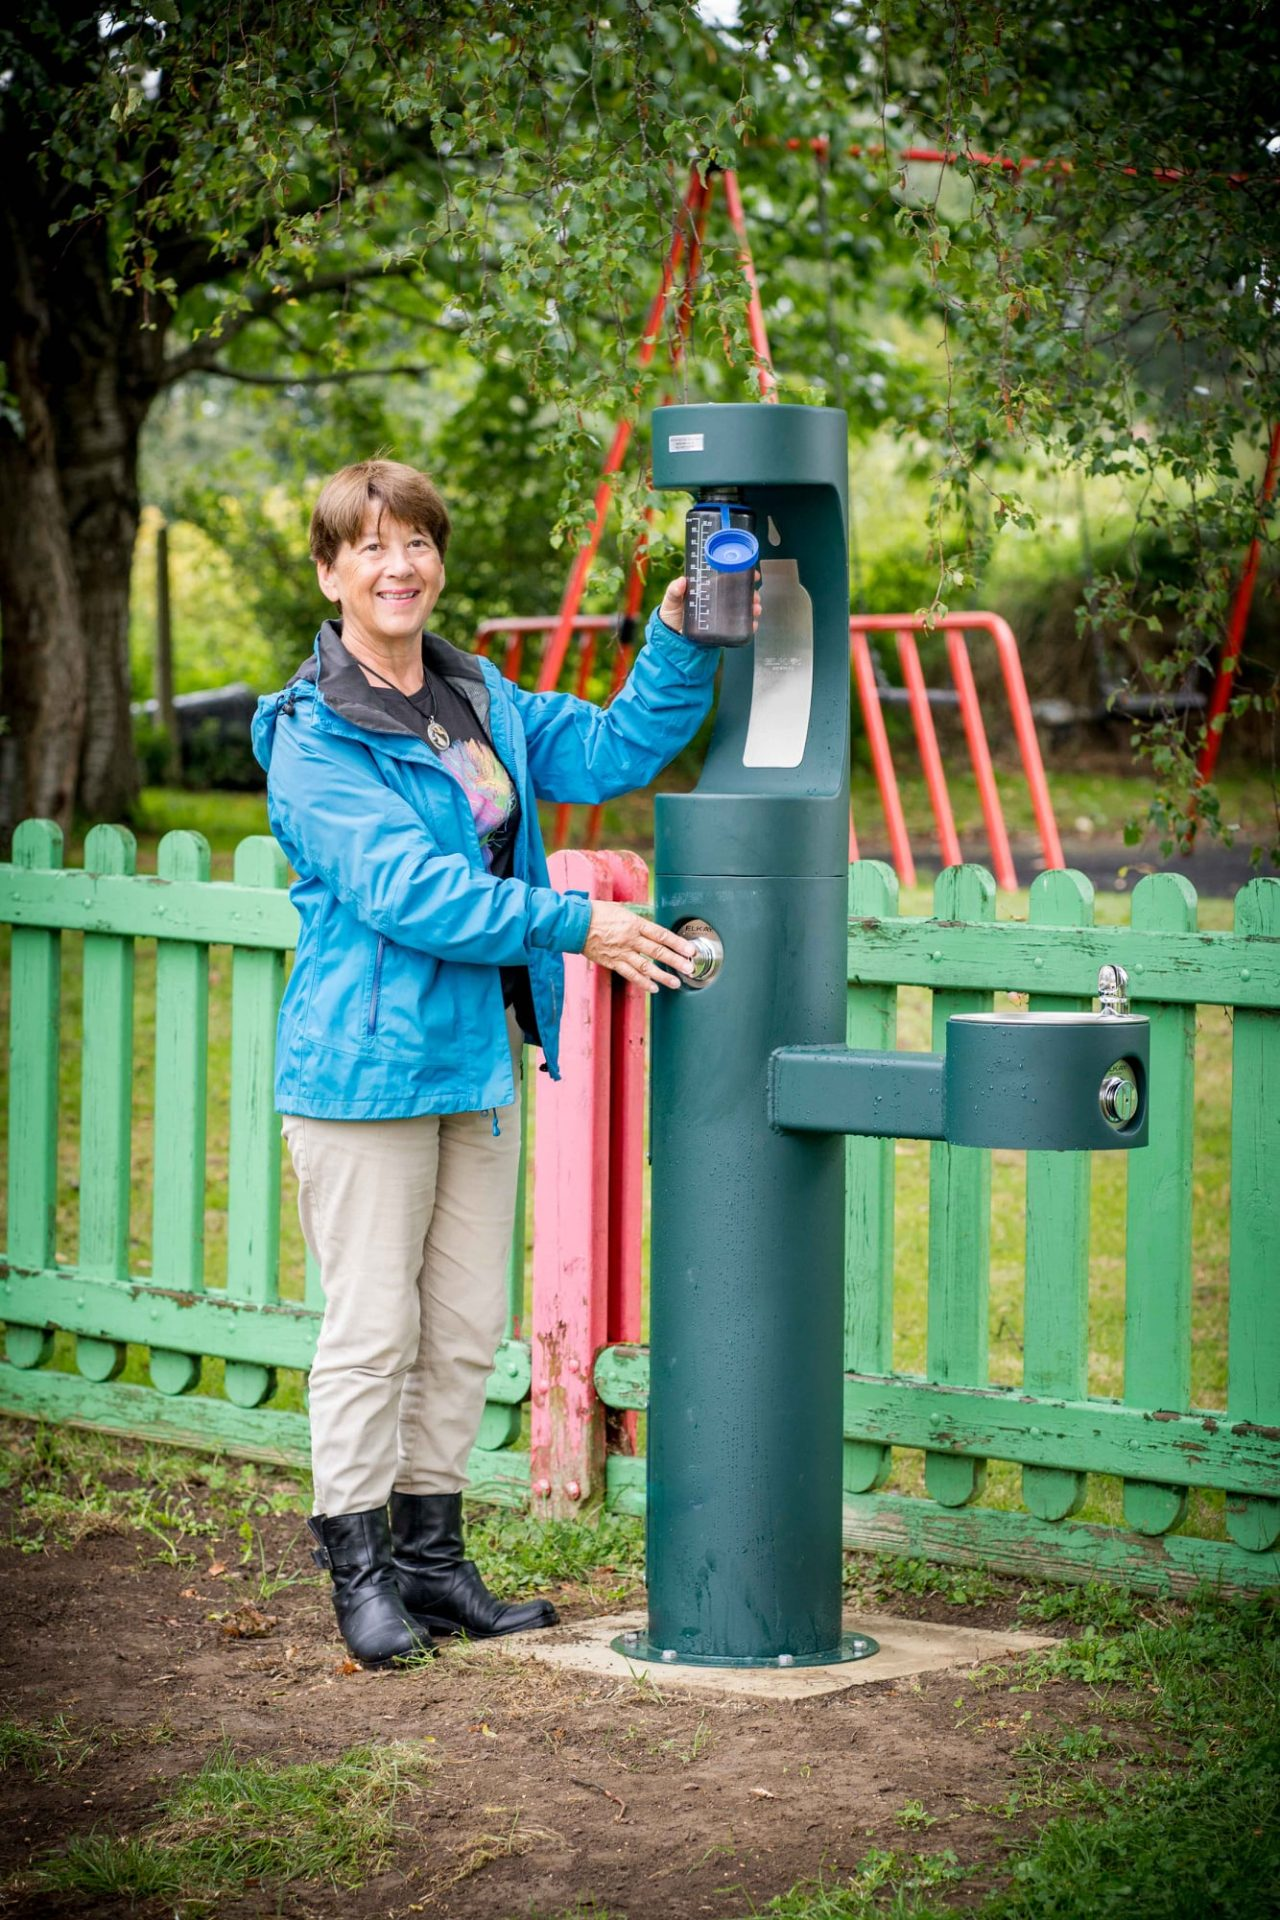 Cllr Alex Kay with the new green bottle refill station at Culver Close Recreation Ground.